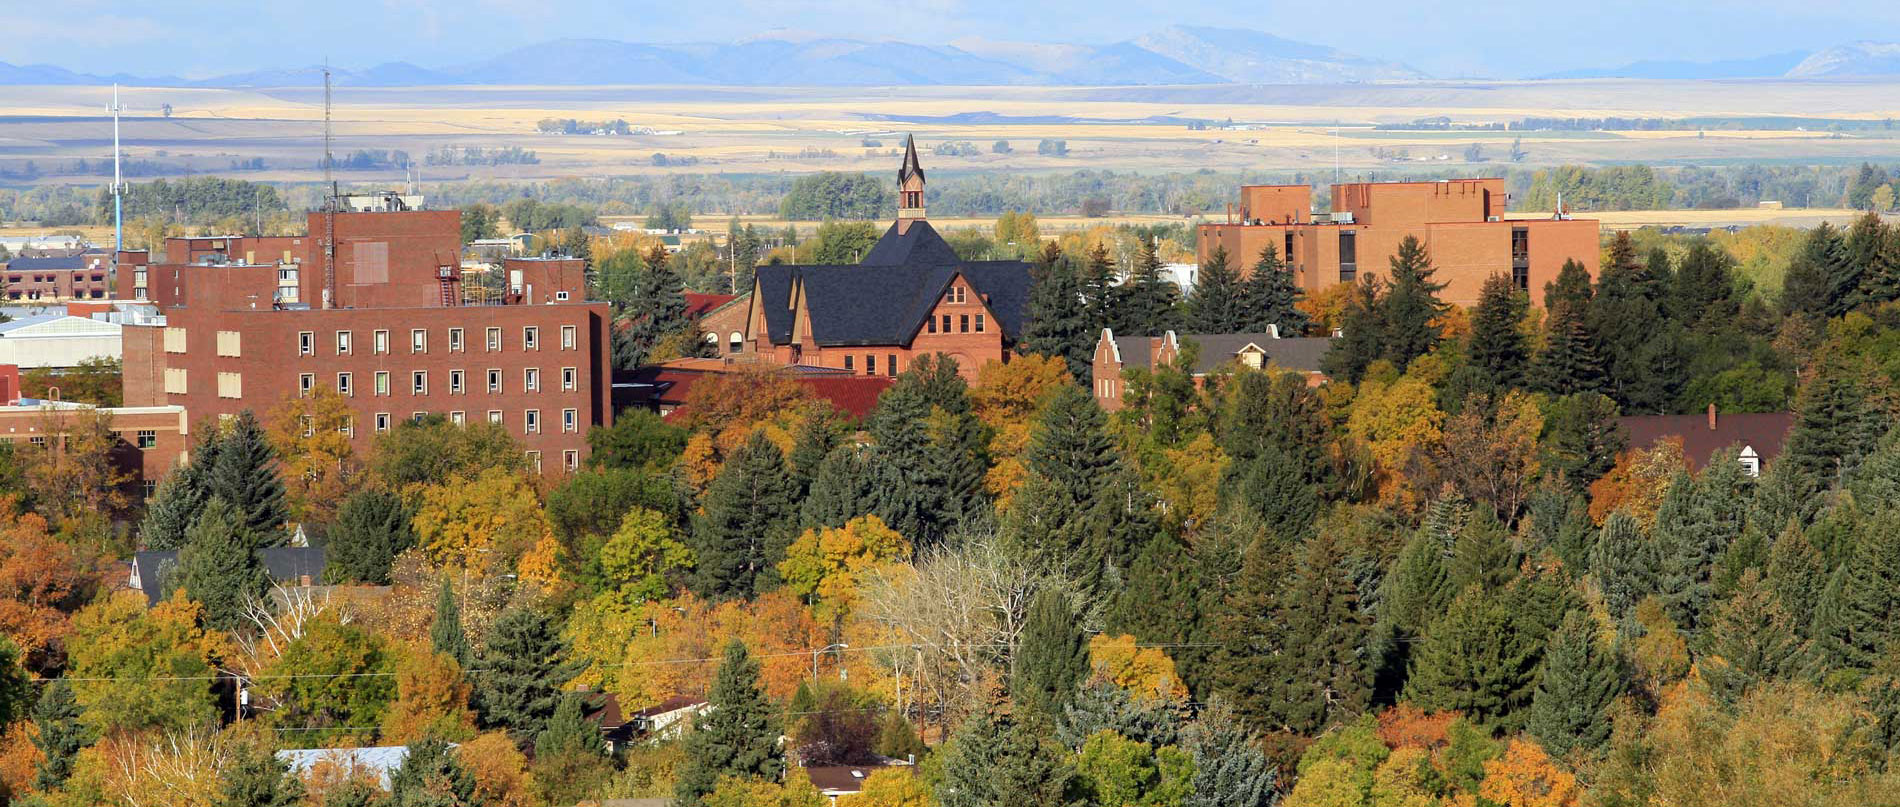 arial view of bozeman montana state university campus